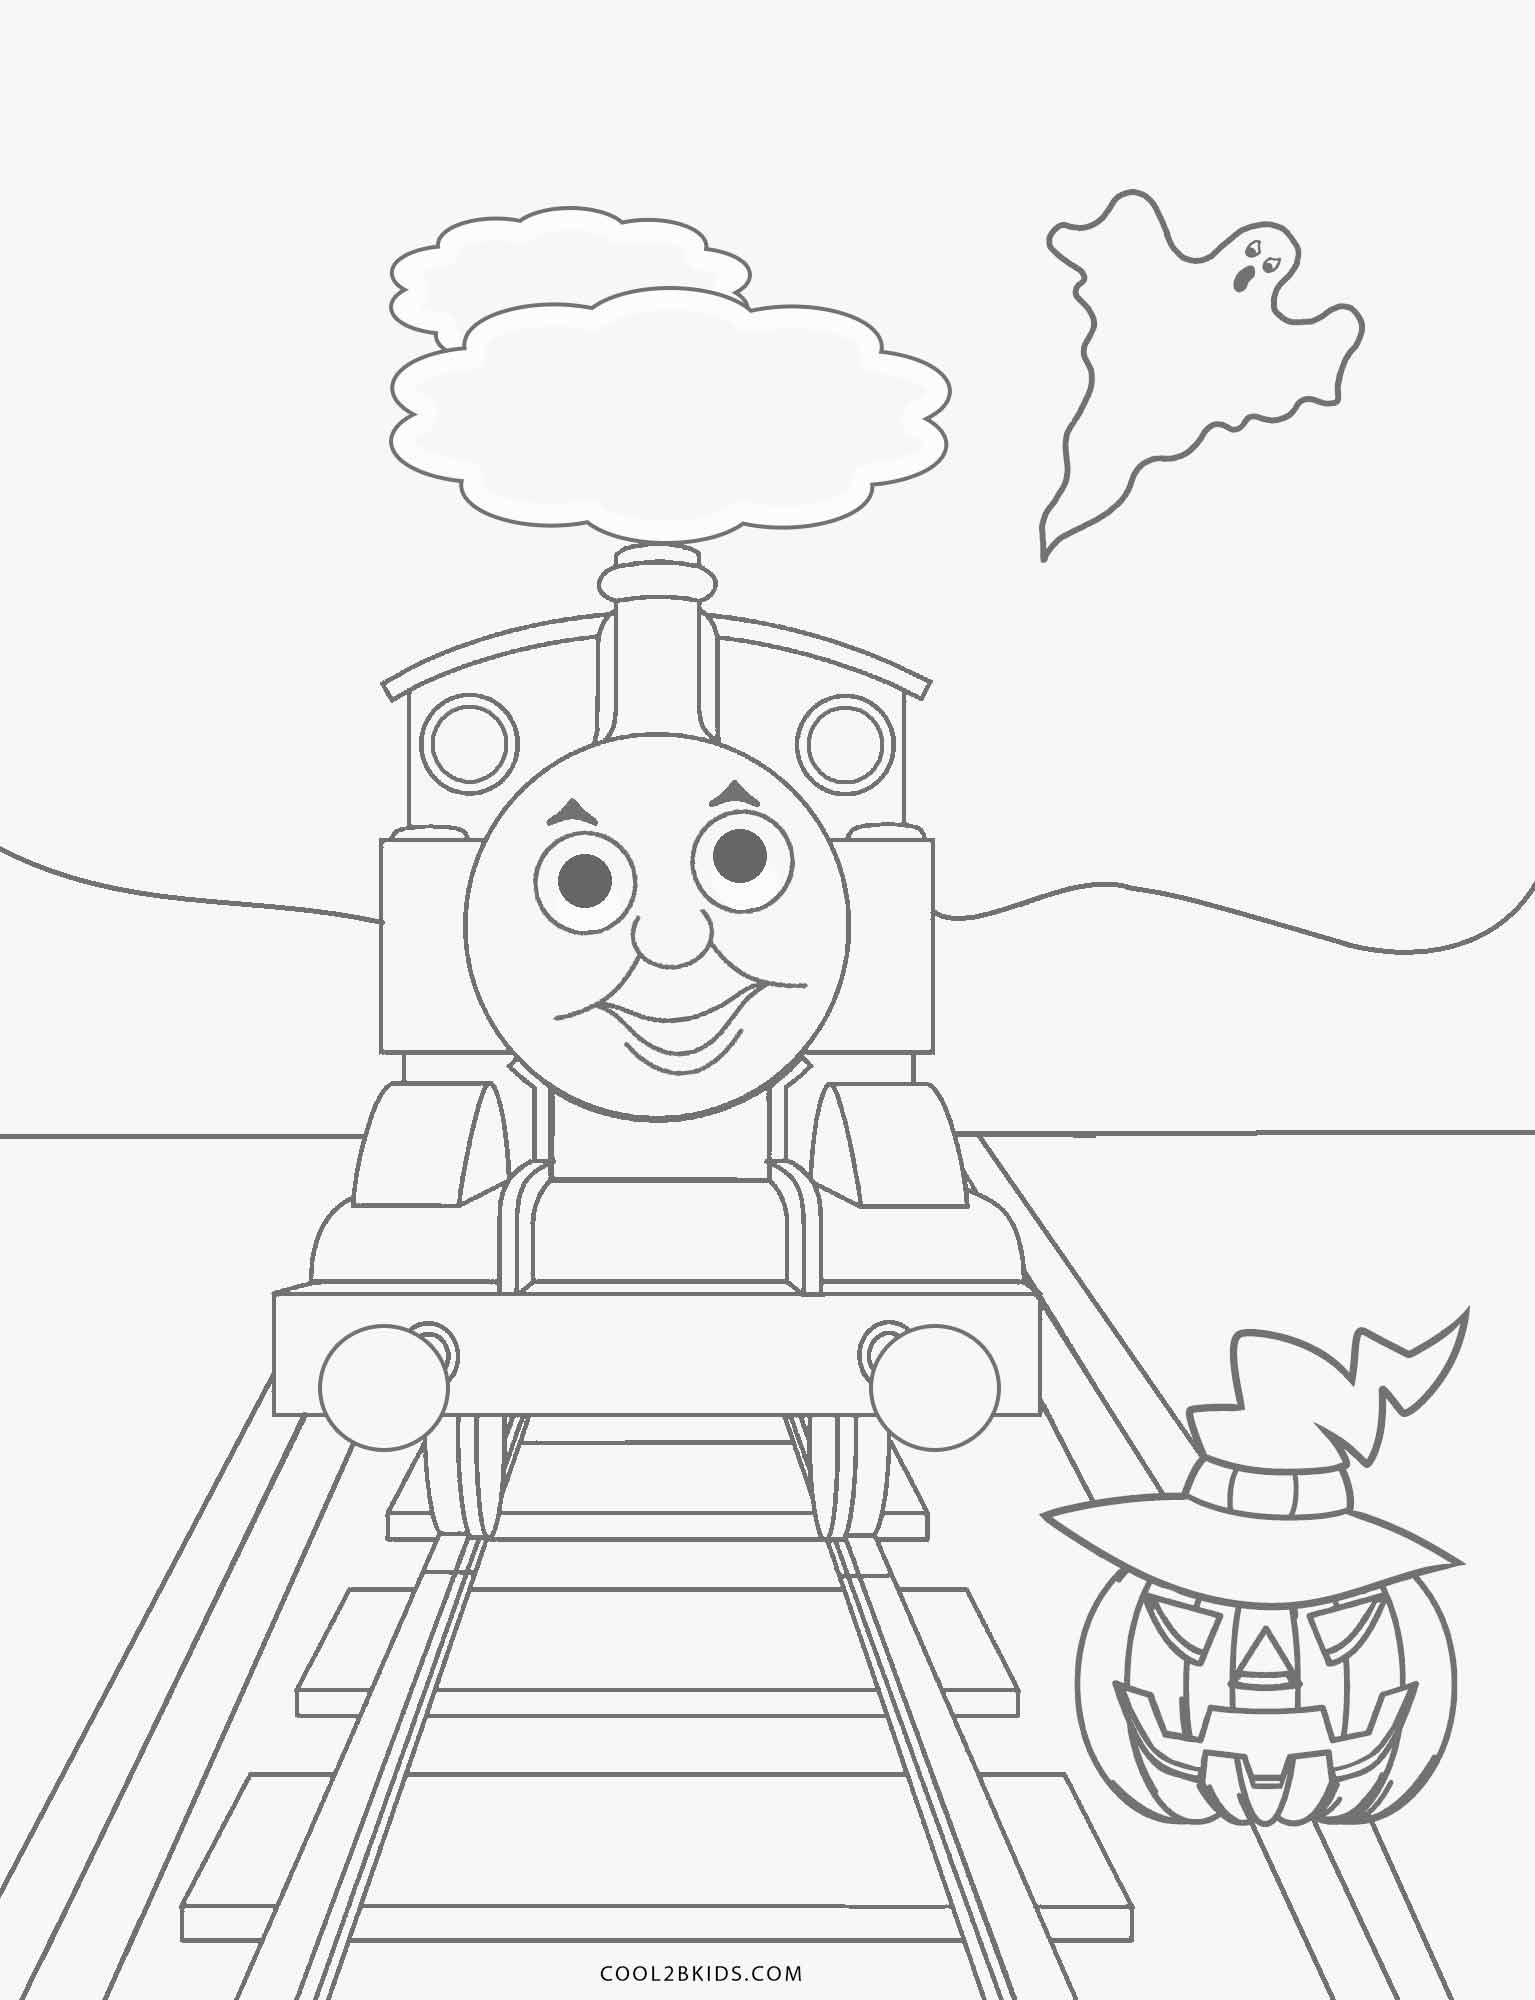 Free Printable Thomas The Train Coloring Pages For Kids Cool2bKids